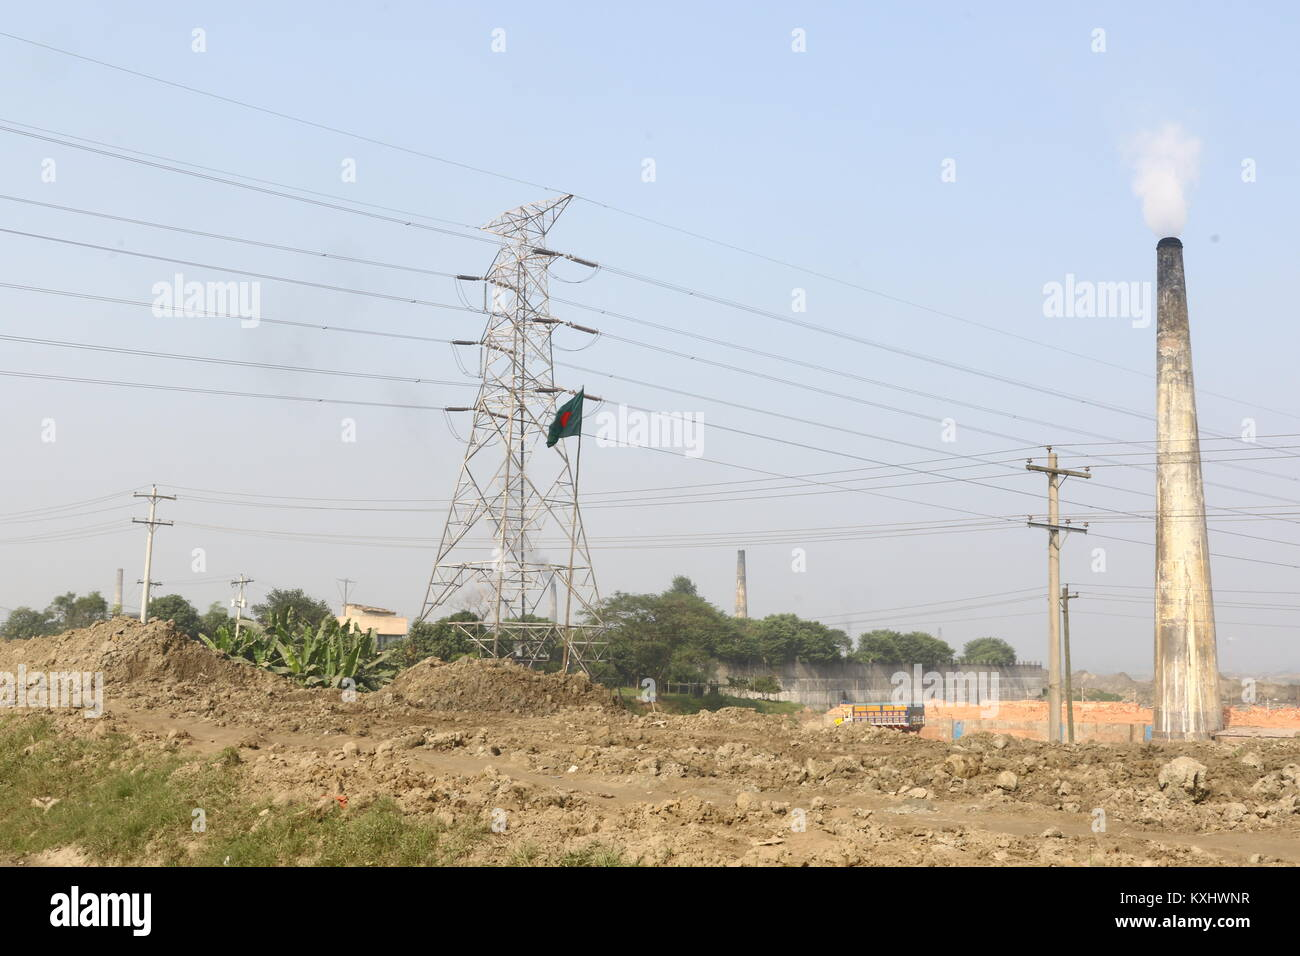 electricity pylon or transmission tower part of the national grid - Stock Image